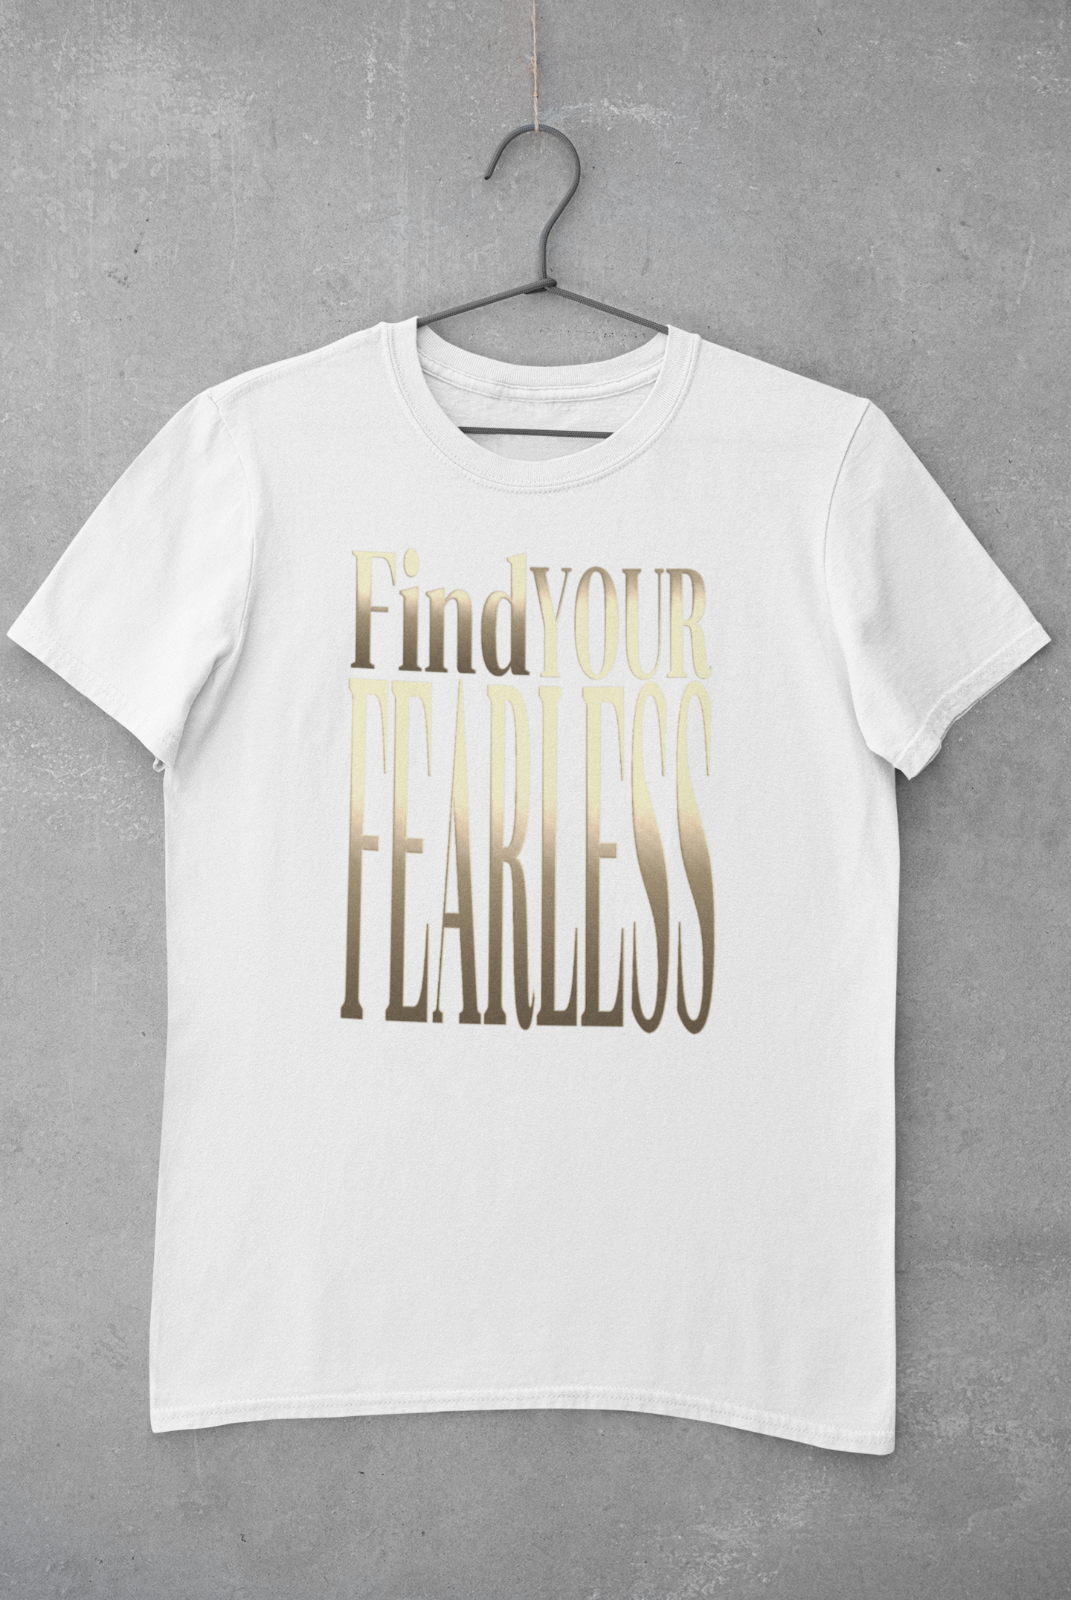 Find Your Fearless T-Shirt | Positive Shirt | Positive Vibes Shirt | Ships Free